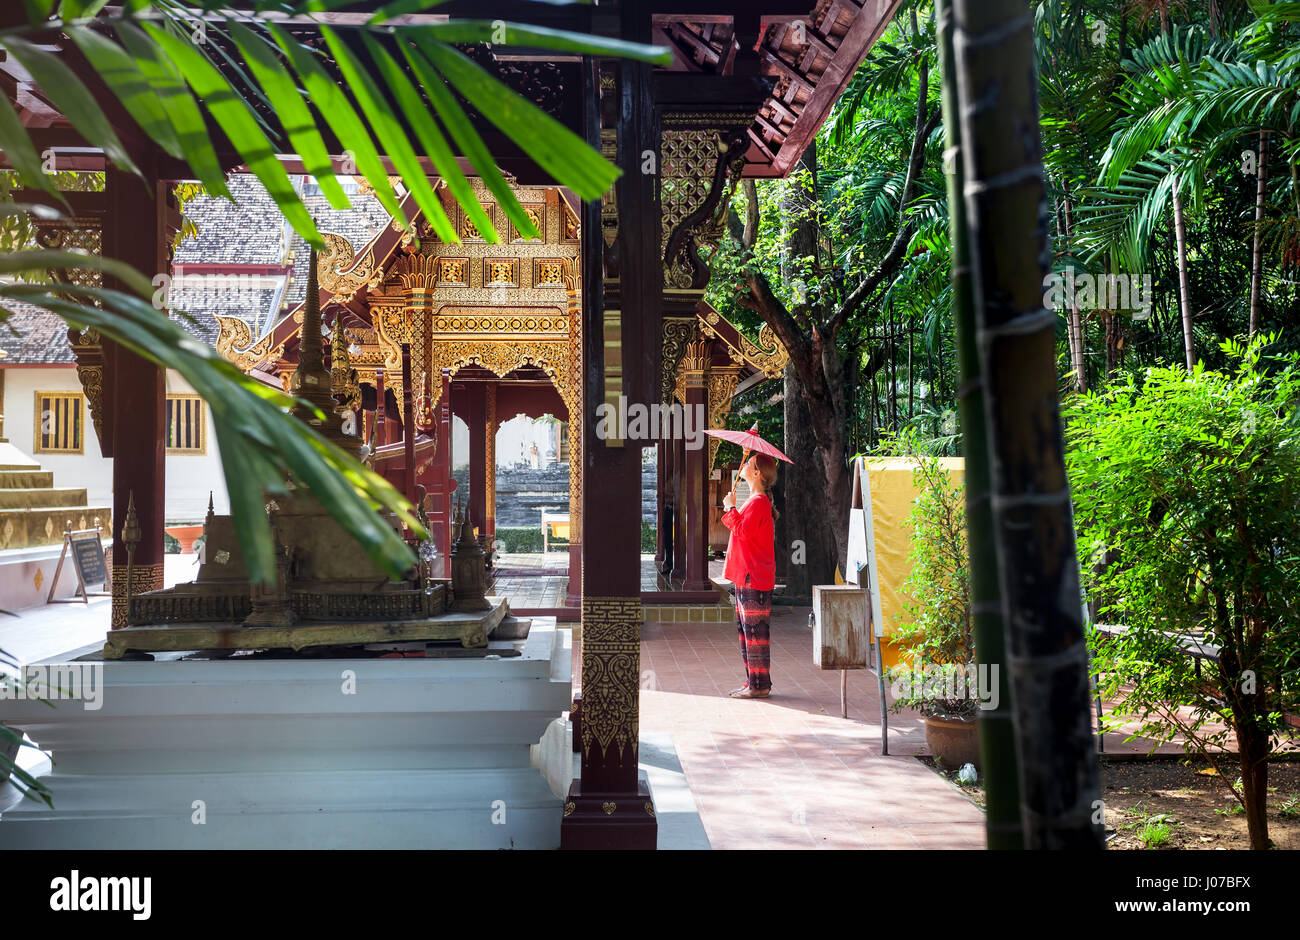 Woman tourist with red traditional Thai umbrella near Golden temple Wat Phra Singh in Chiang Mai, Thailand Stock Photo